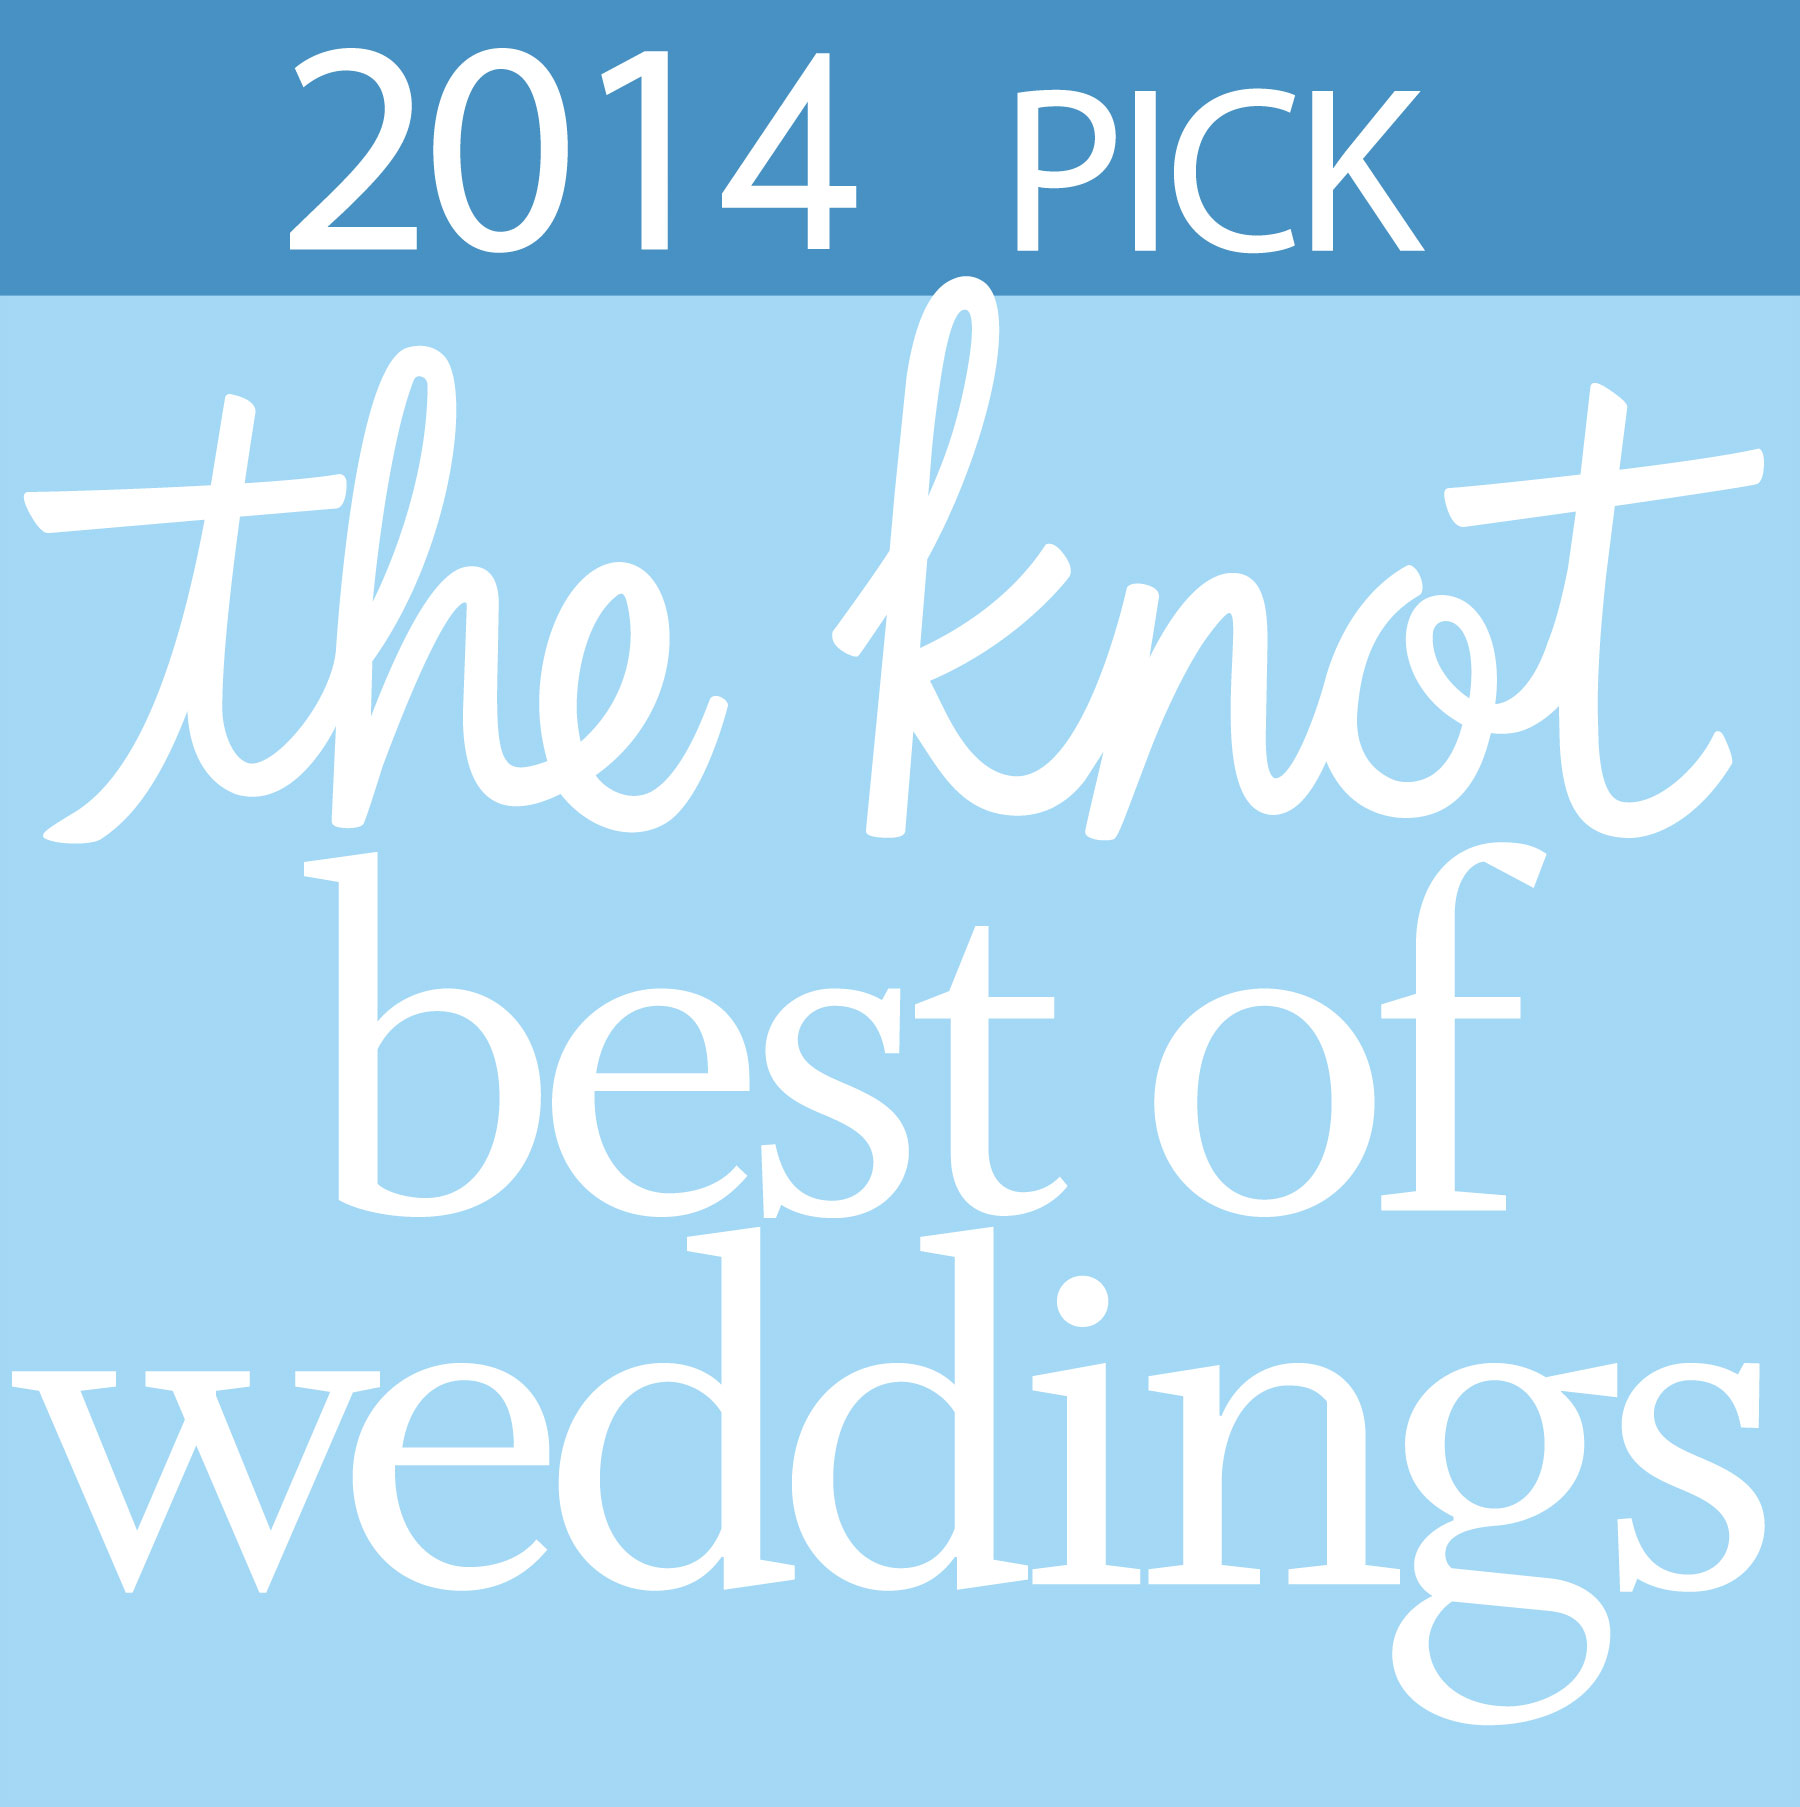 Knot-best-of-weddings-logo-2014.jpg